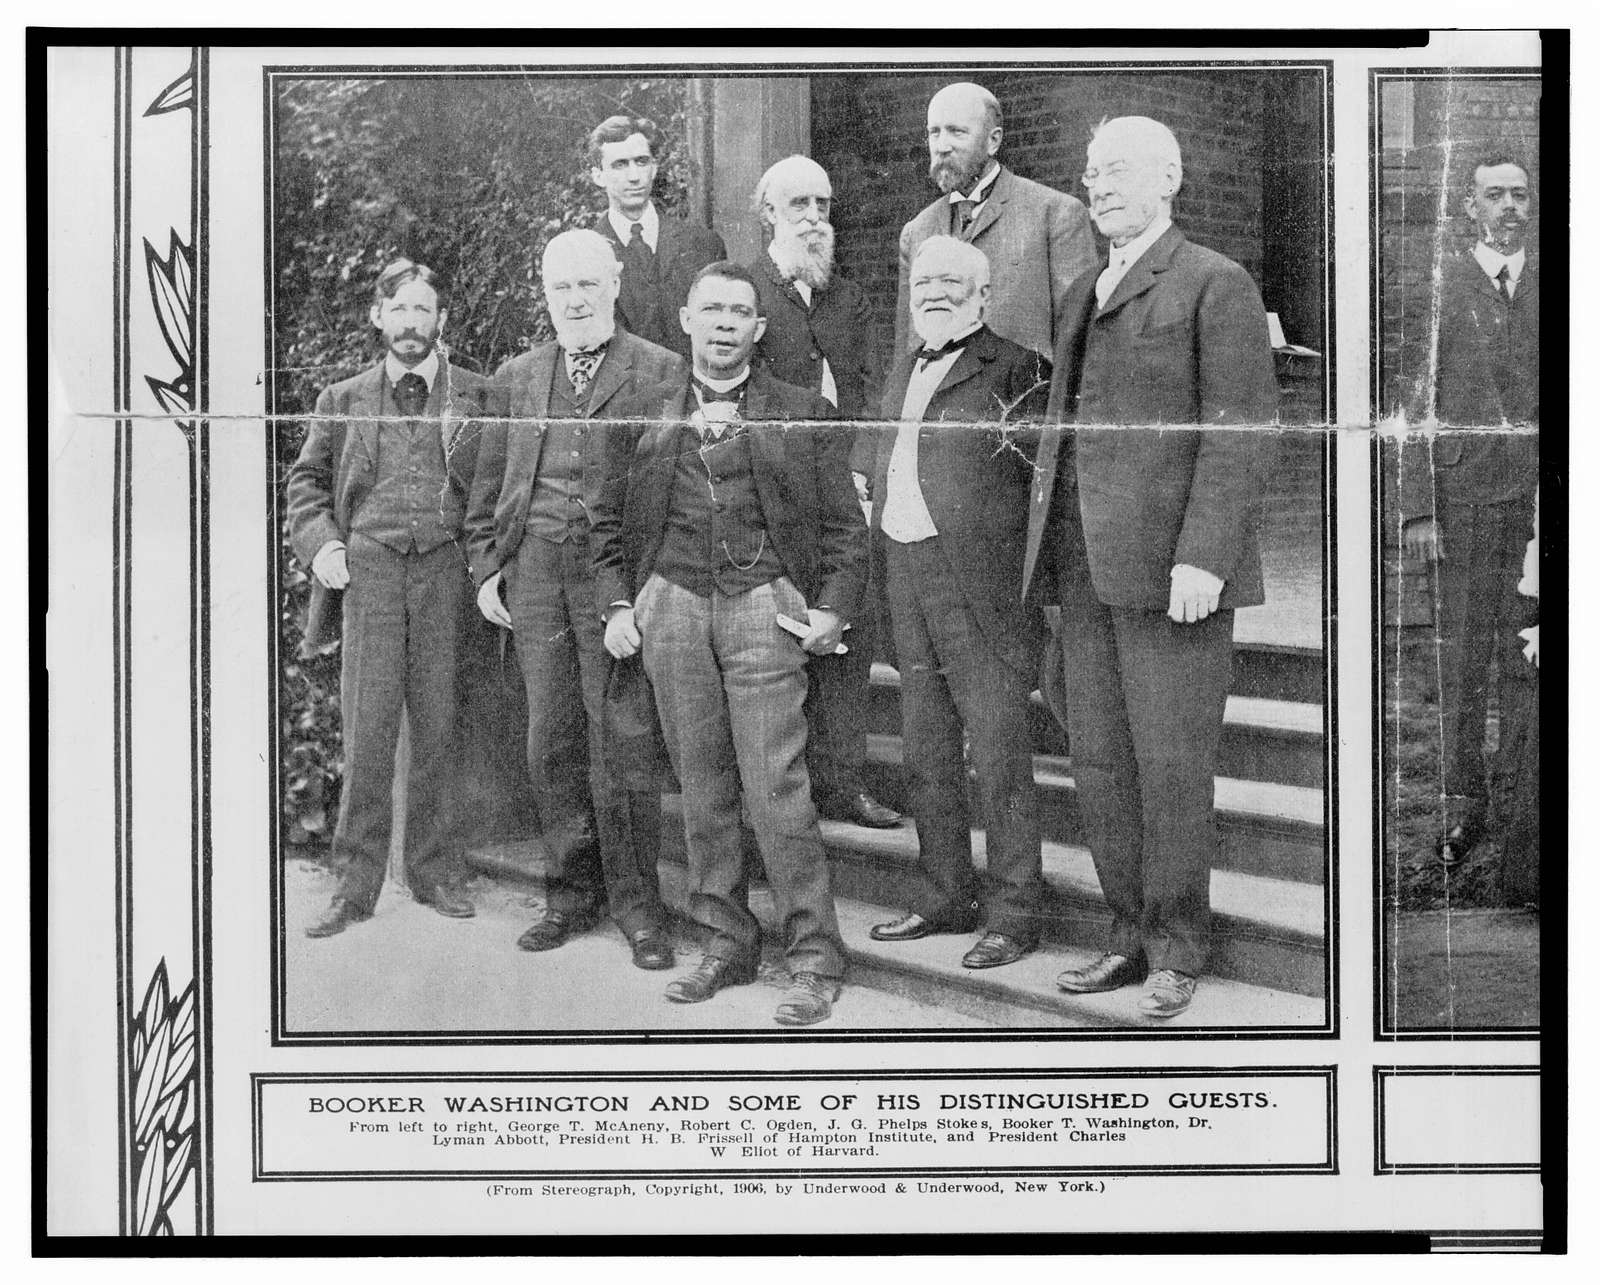 Booker Washington and some of his distinguished guests